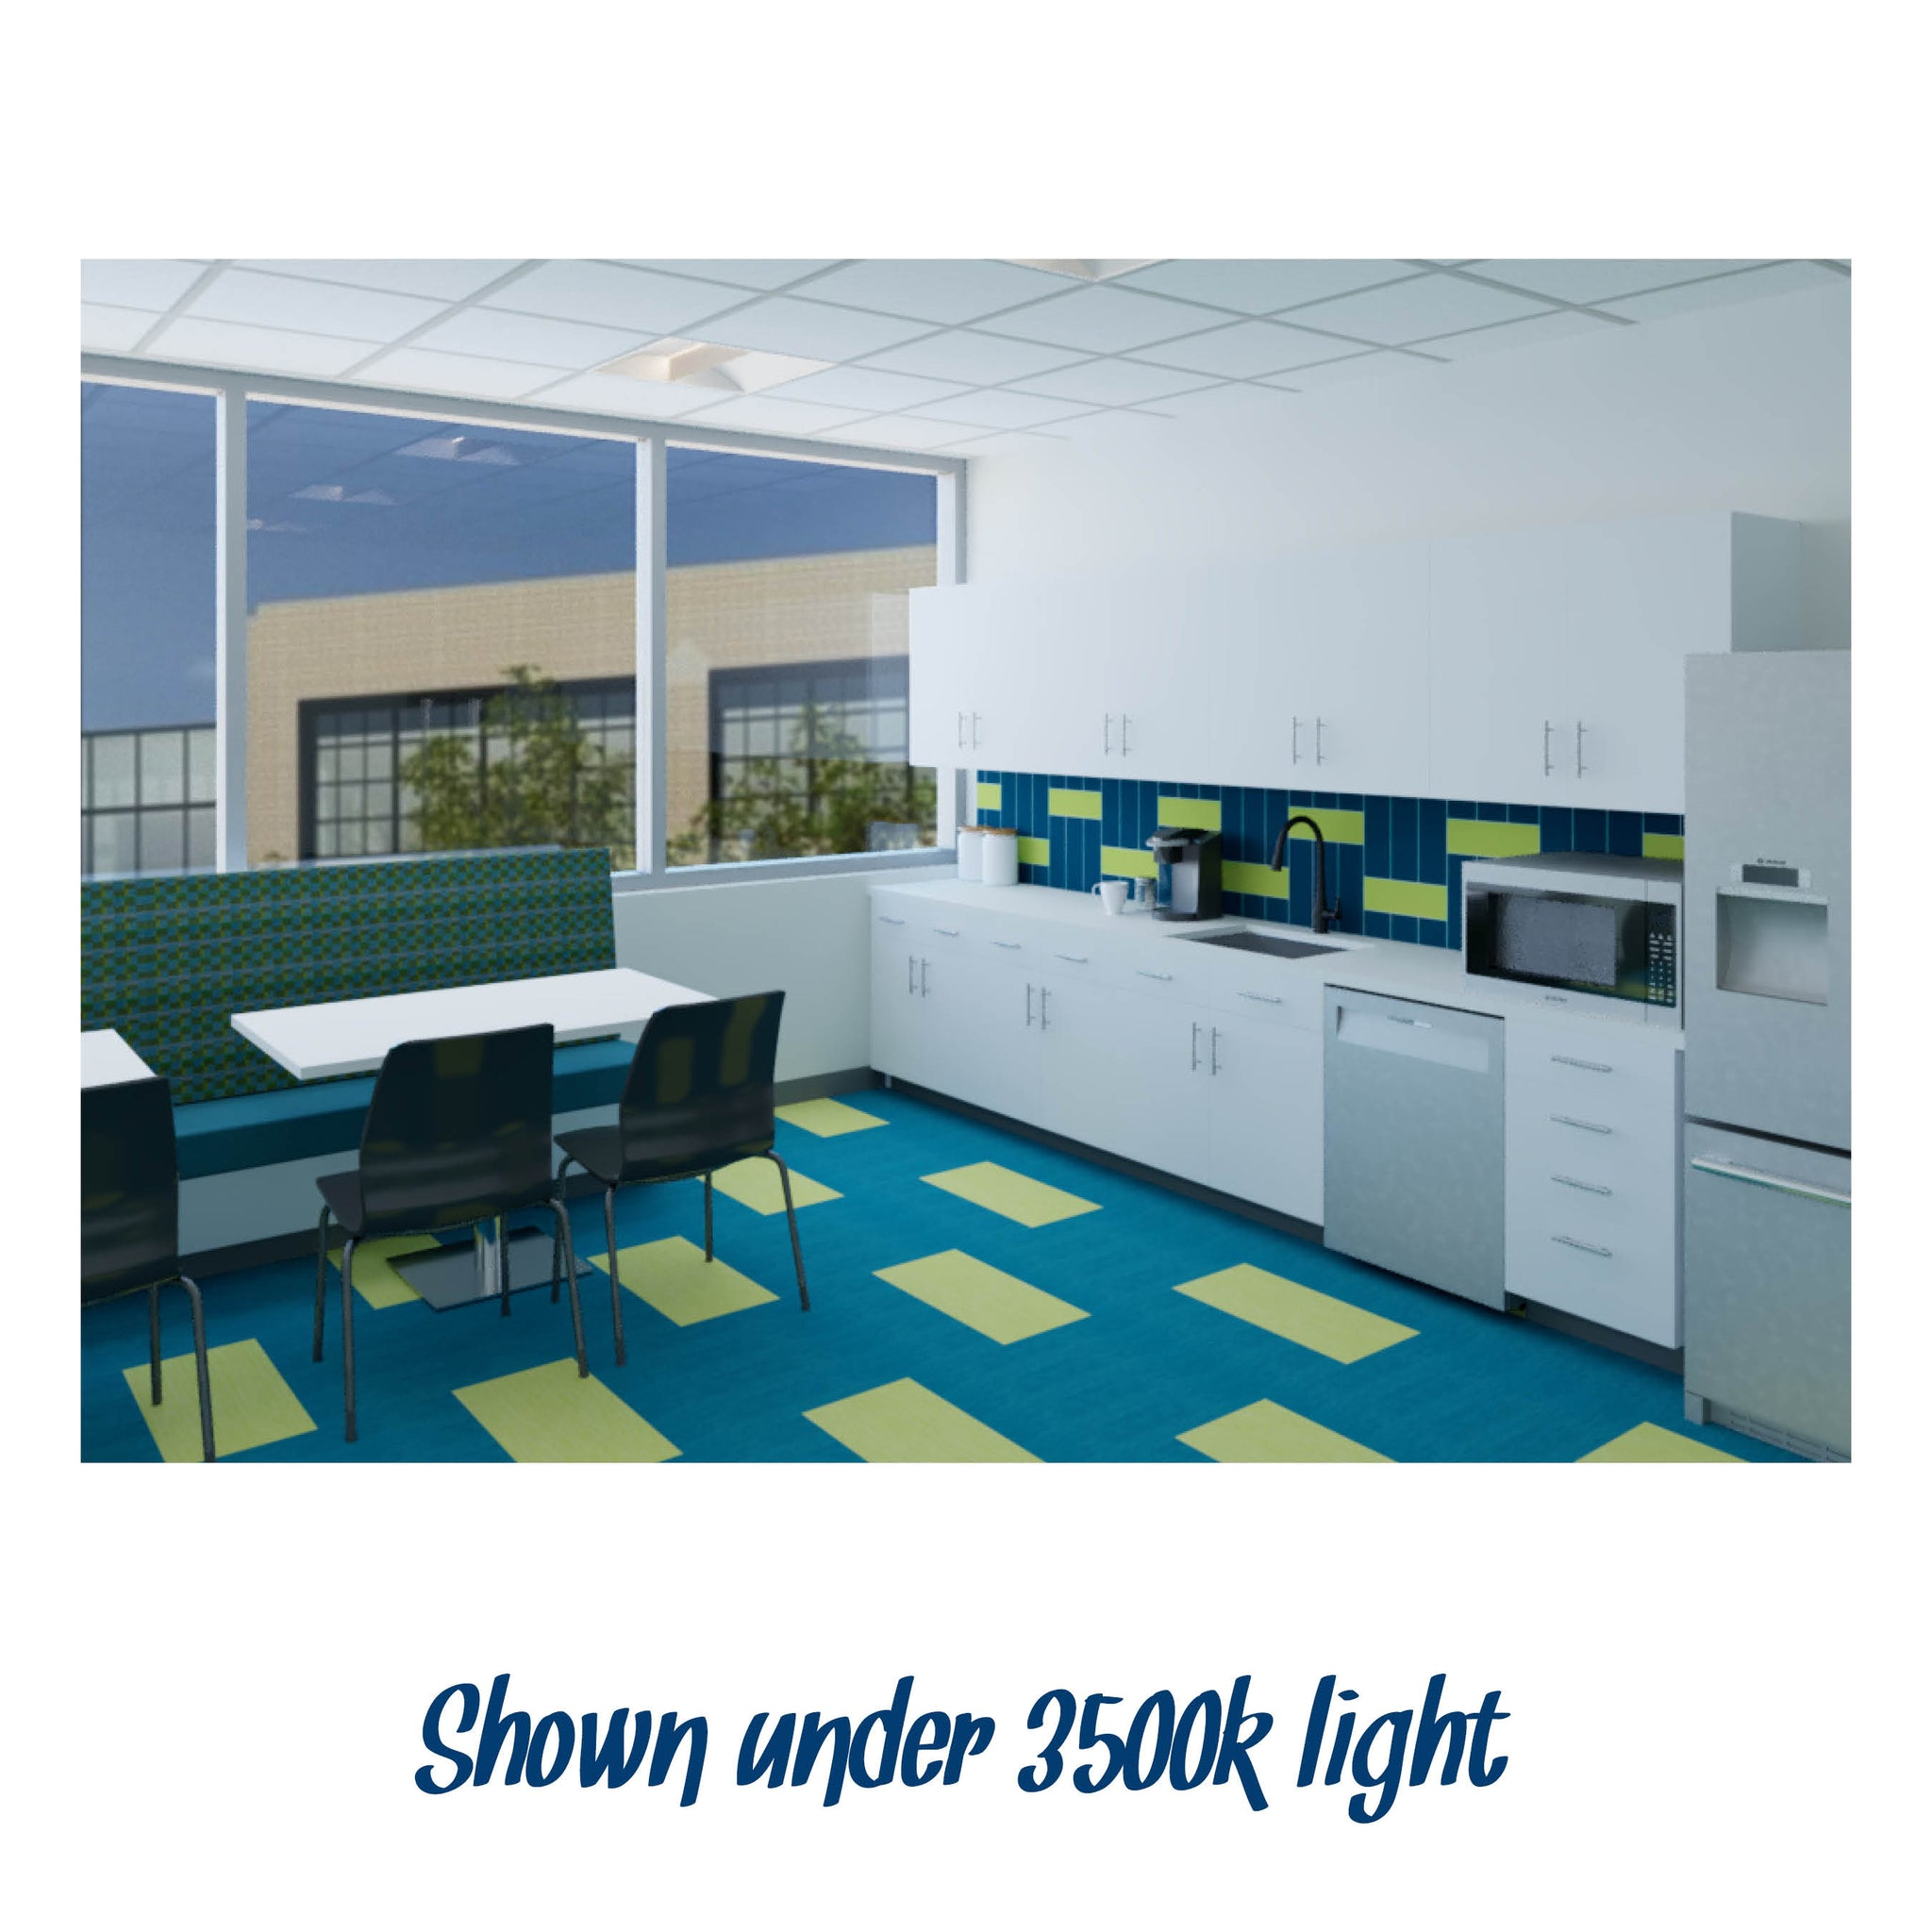 Break Room Cool Color #1 renderings shown under 3500k light